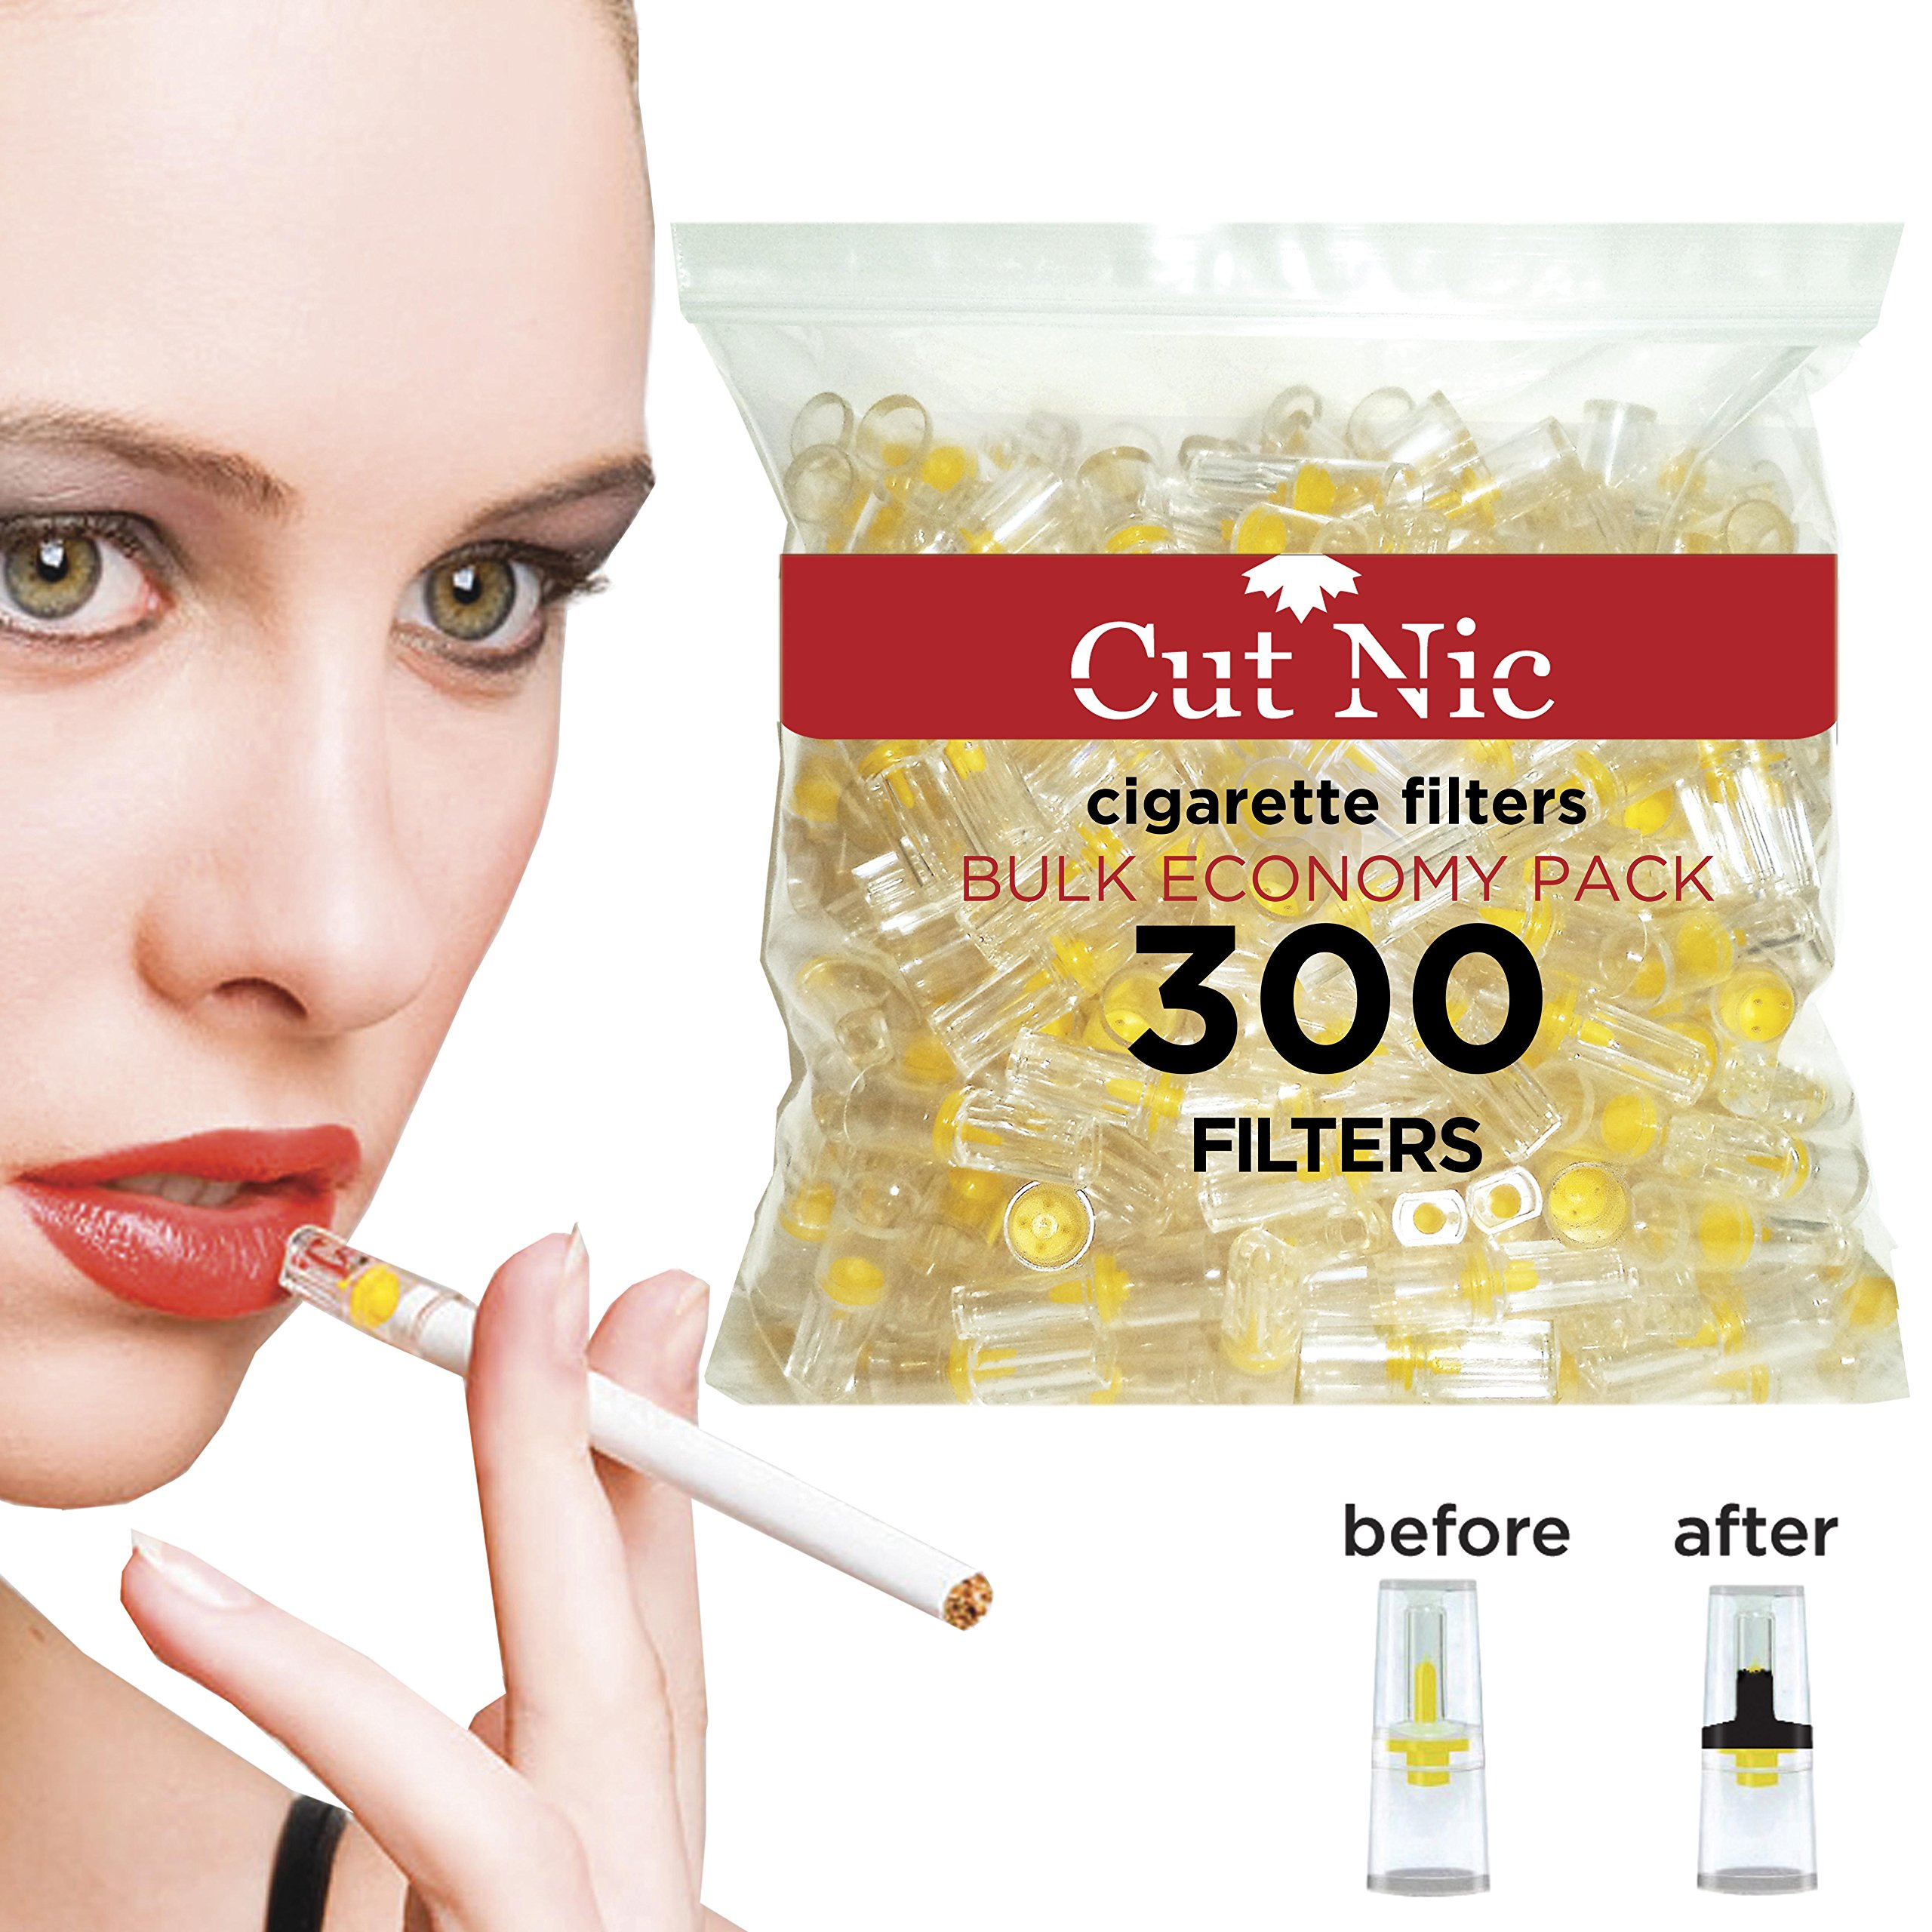 Cut-Nic 4 HOLE Disposable Cigarette Filters - Bulk Economy Pack (300 Per Pack) Filter Tips